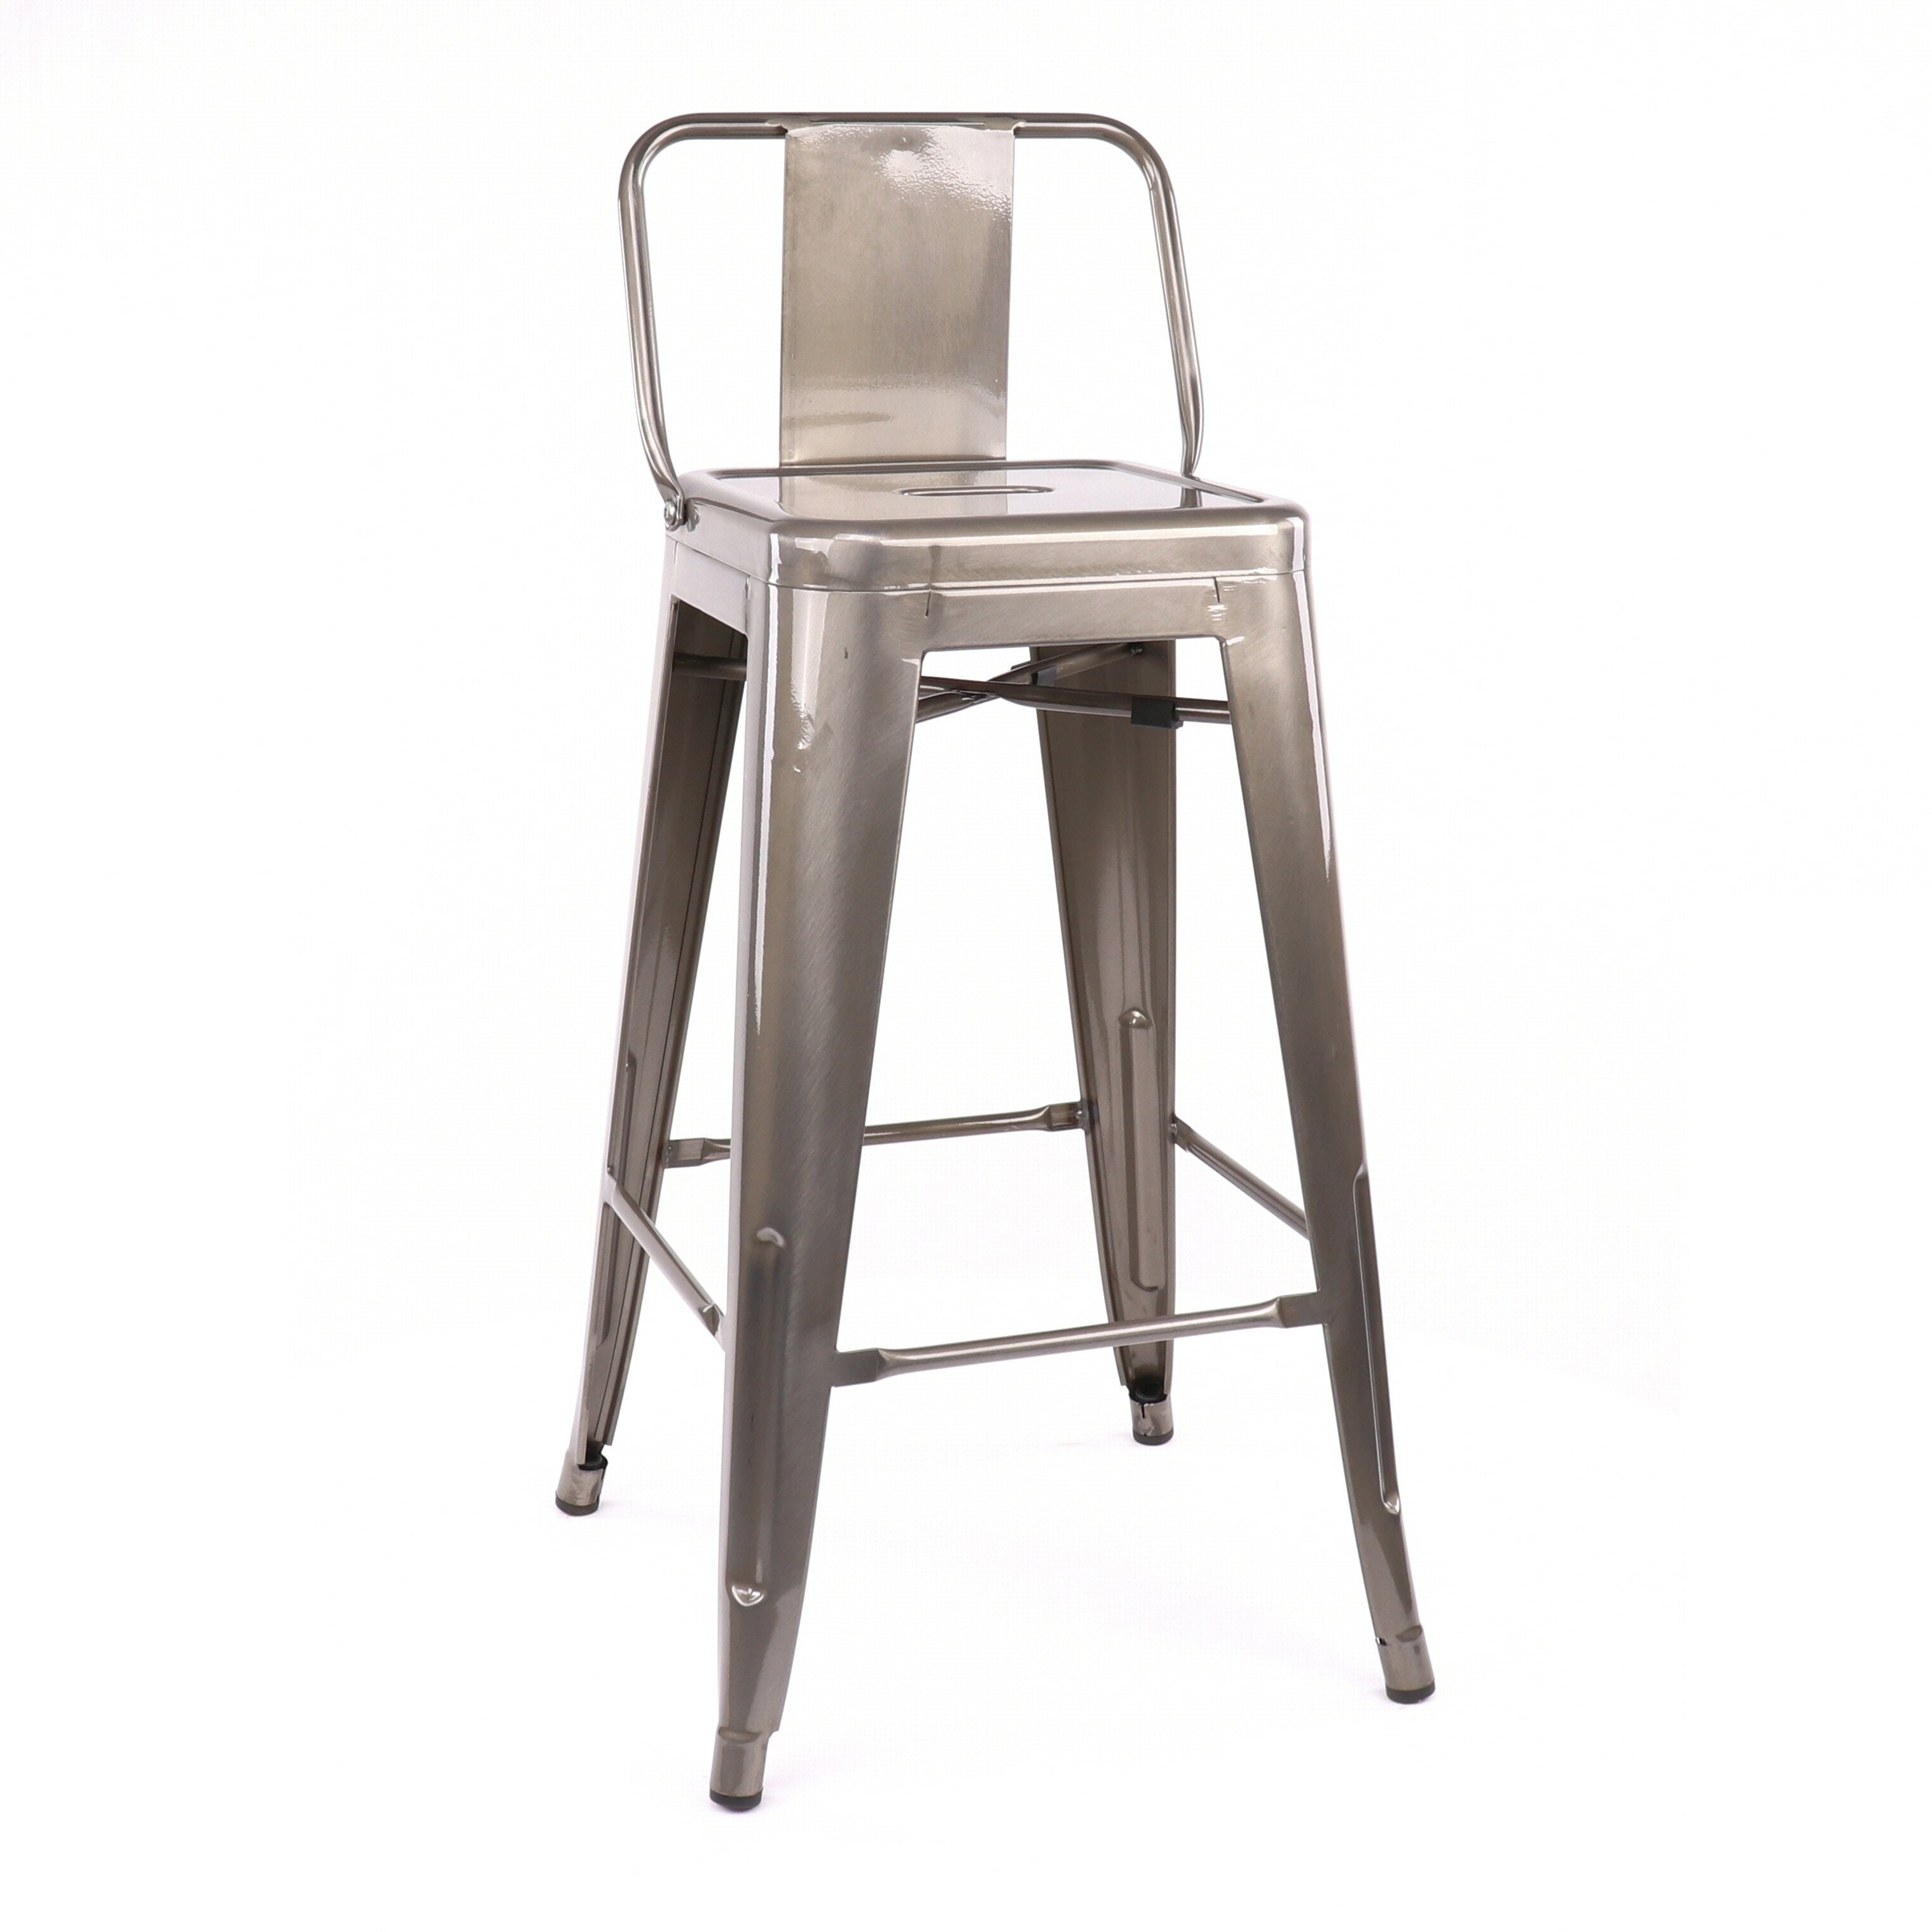 Amalfi Gunmetal Low Back Steel Counter Height Stool Set Of 4